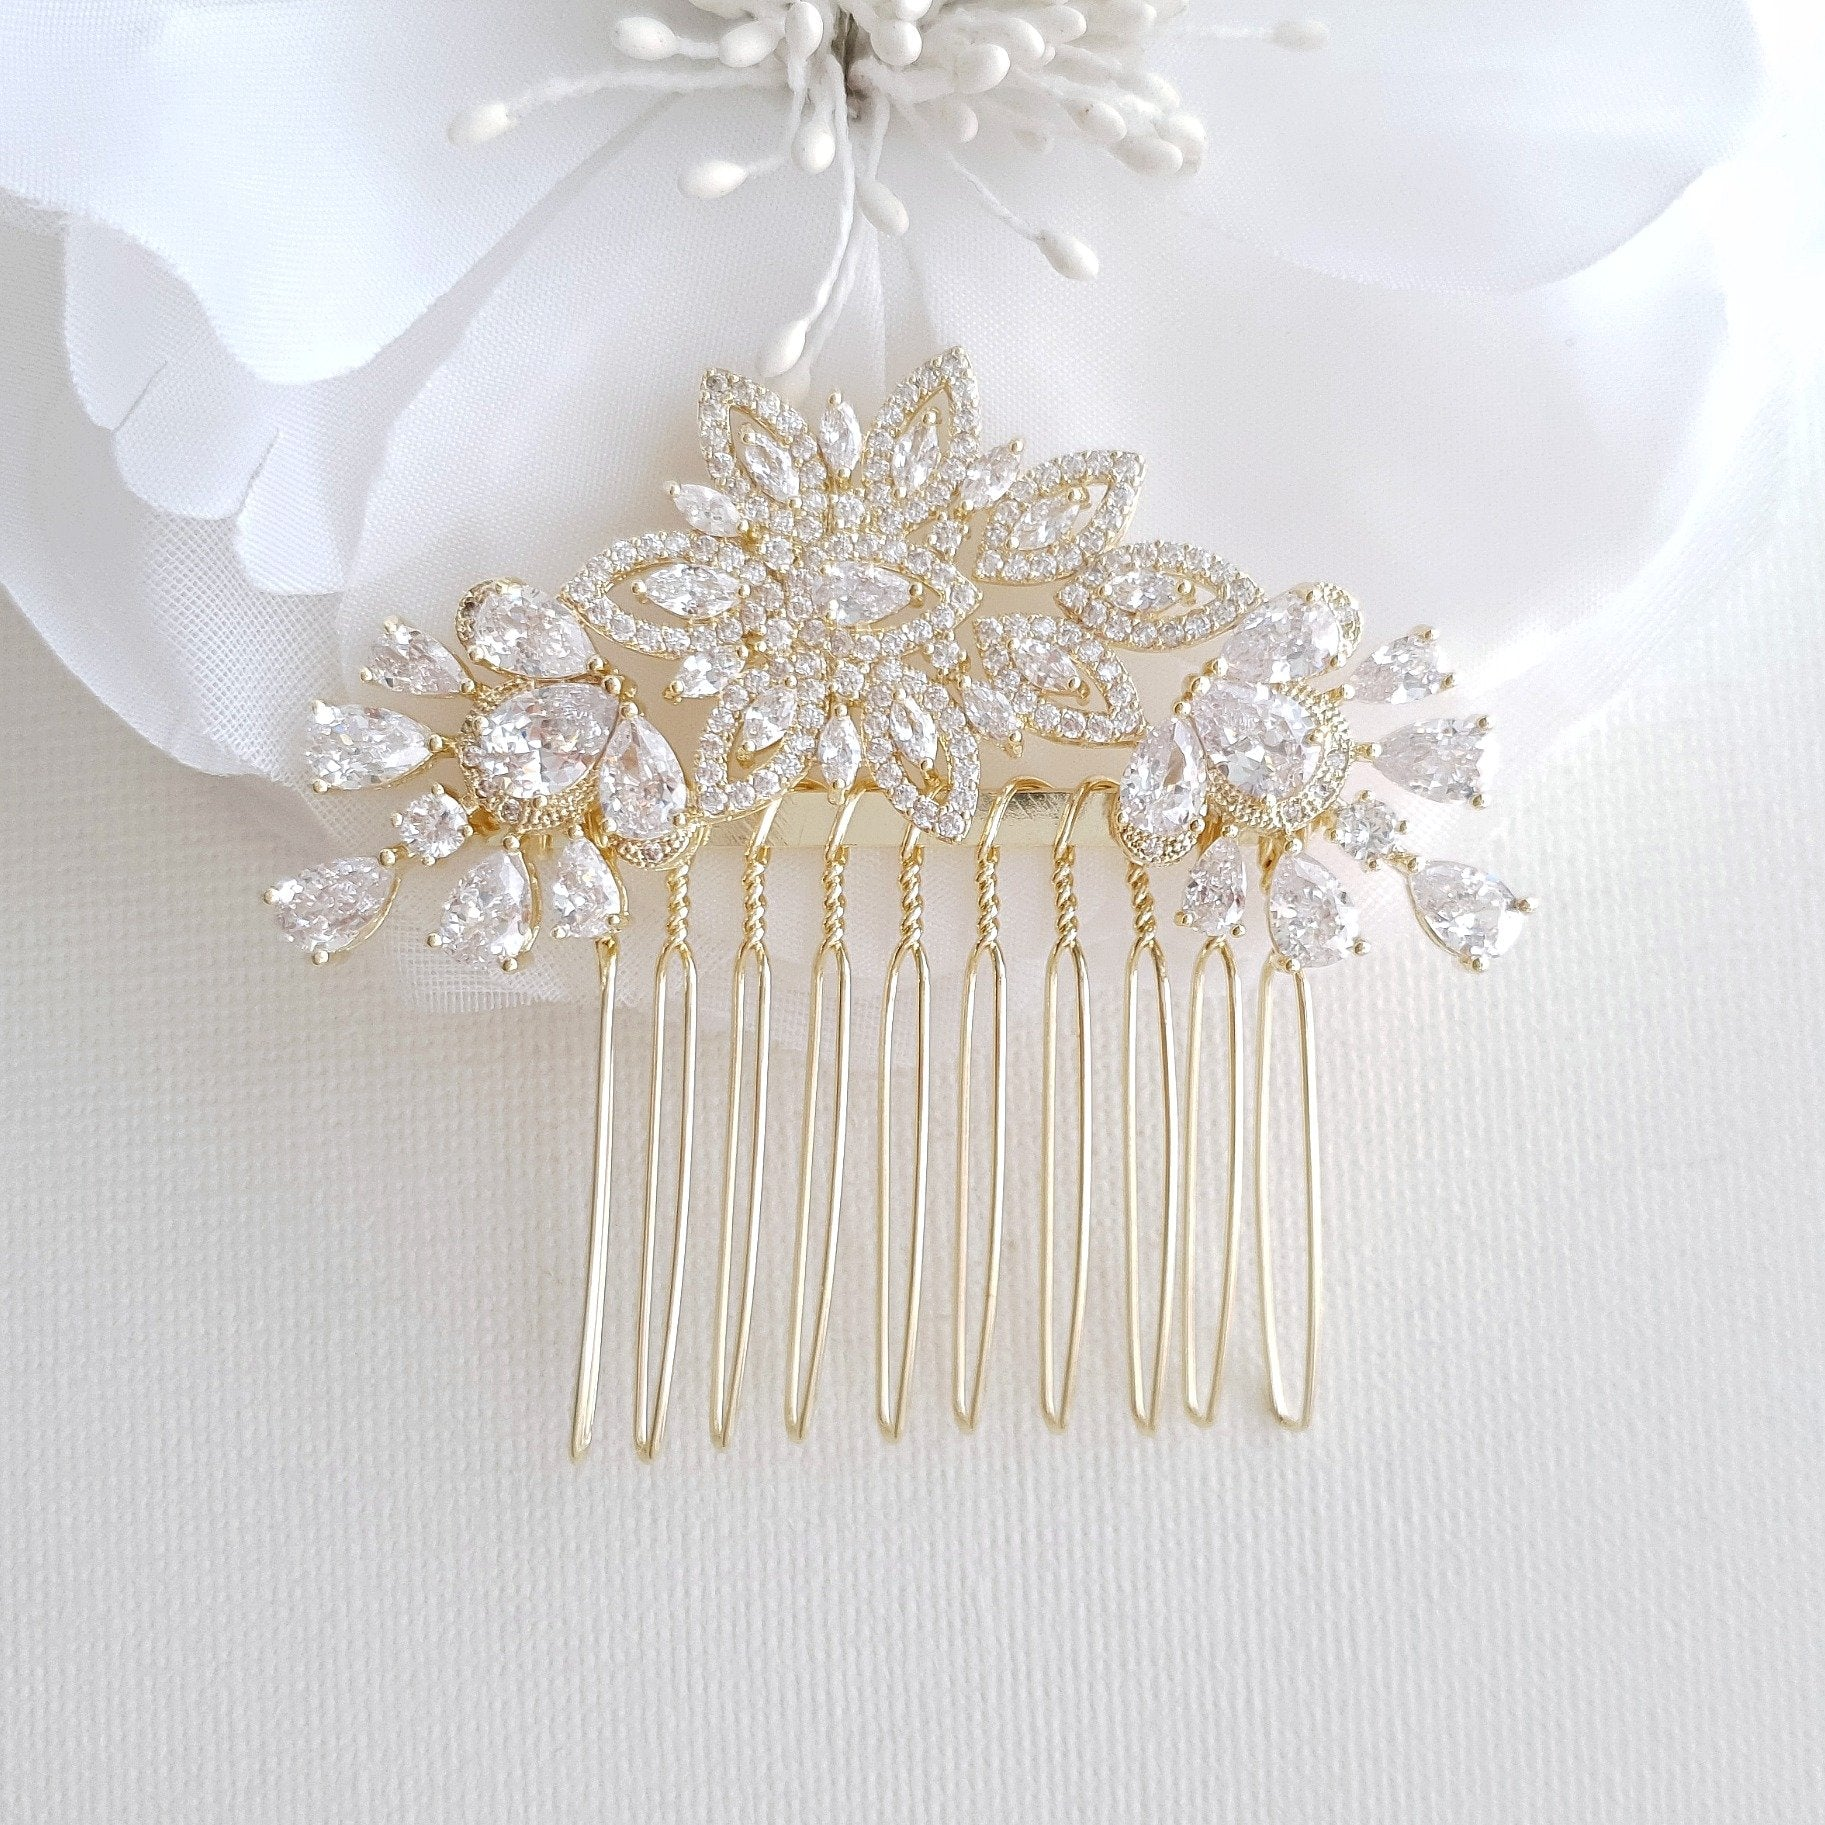 Jeweled Bridal Hair Combs- Lara - PoetryDesigns